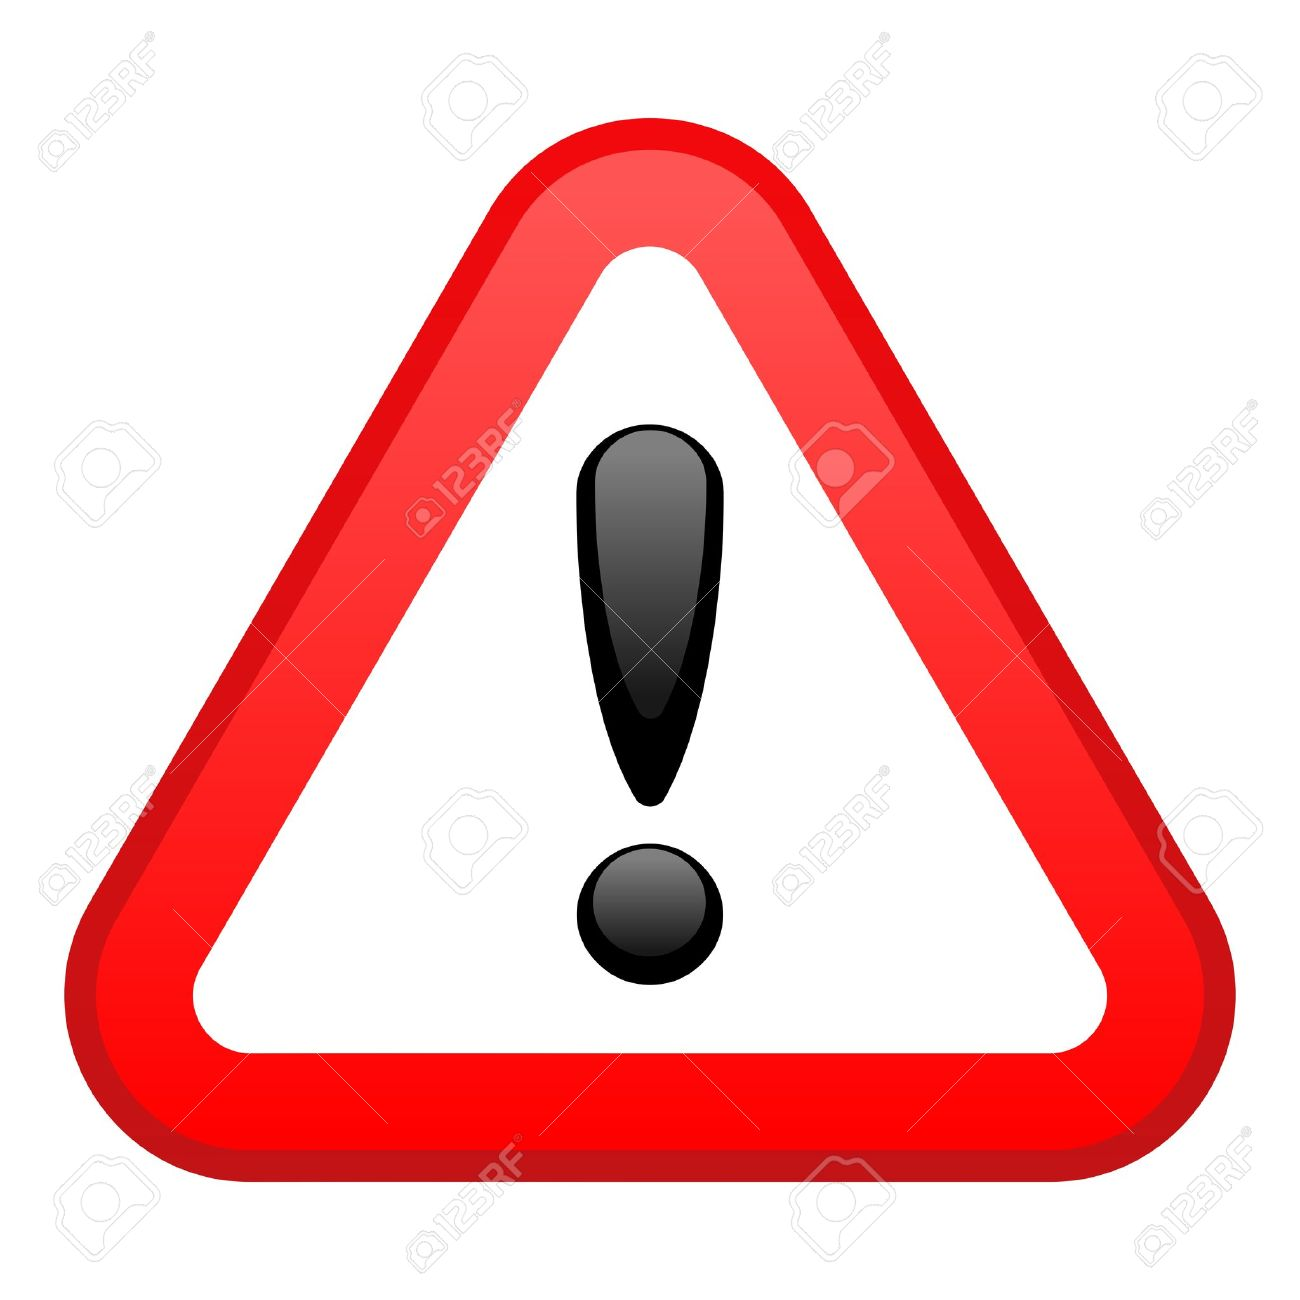 Warning Red Triangular Sign Stock Vector - 5536864